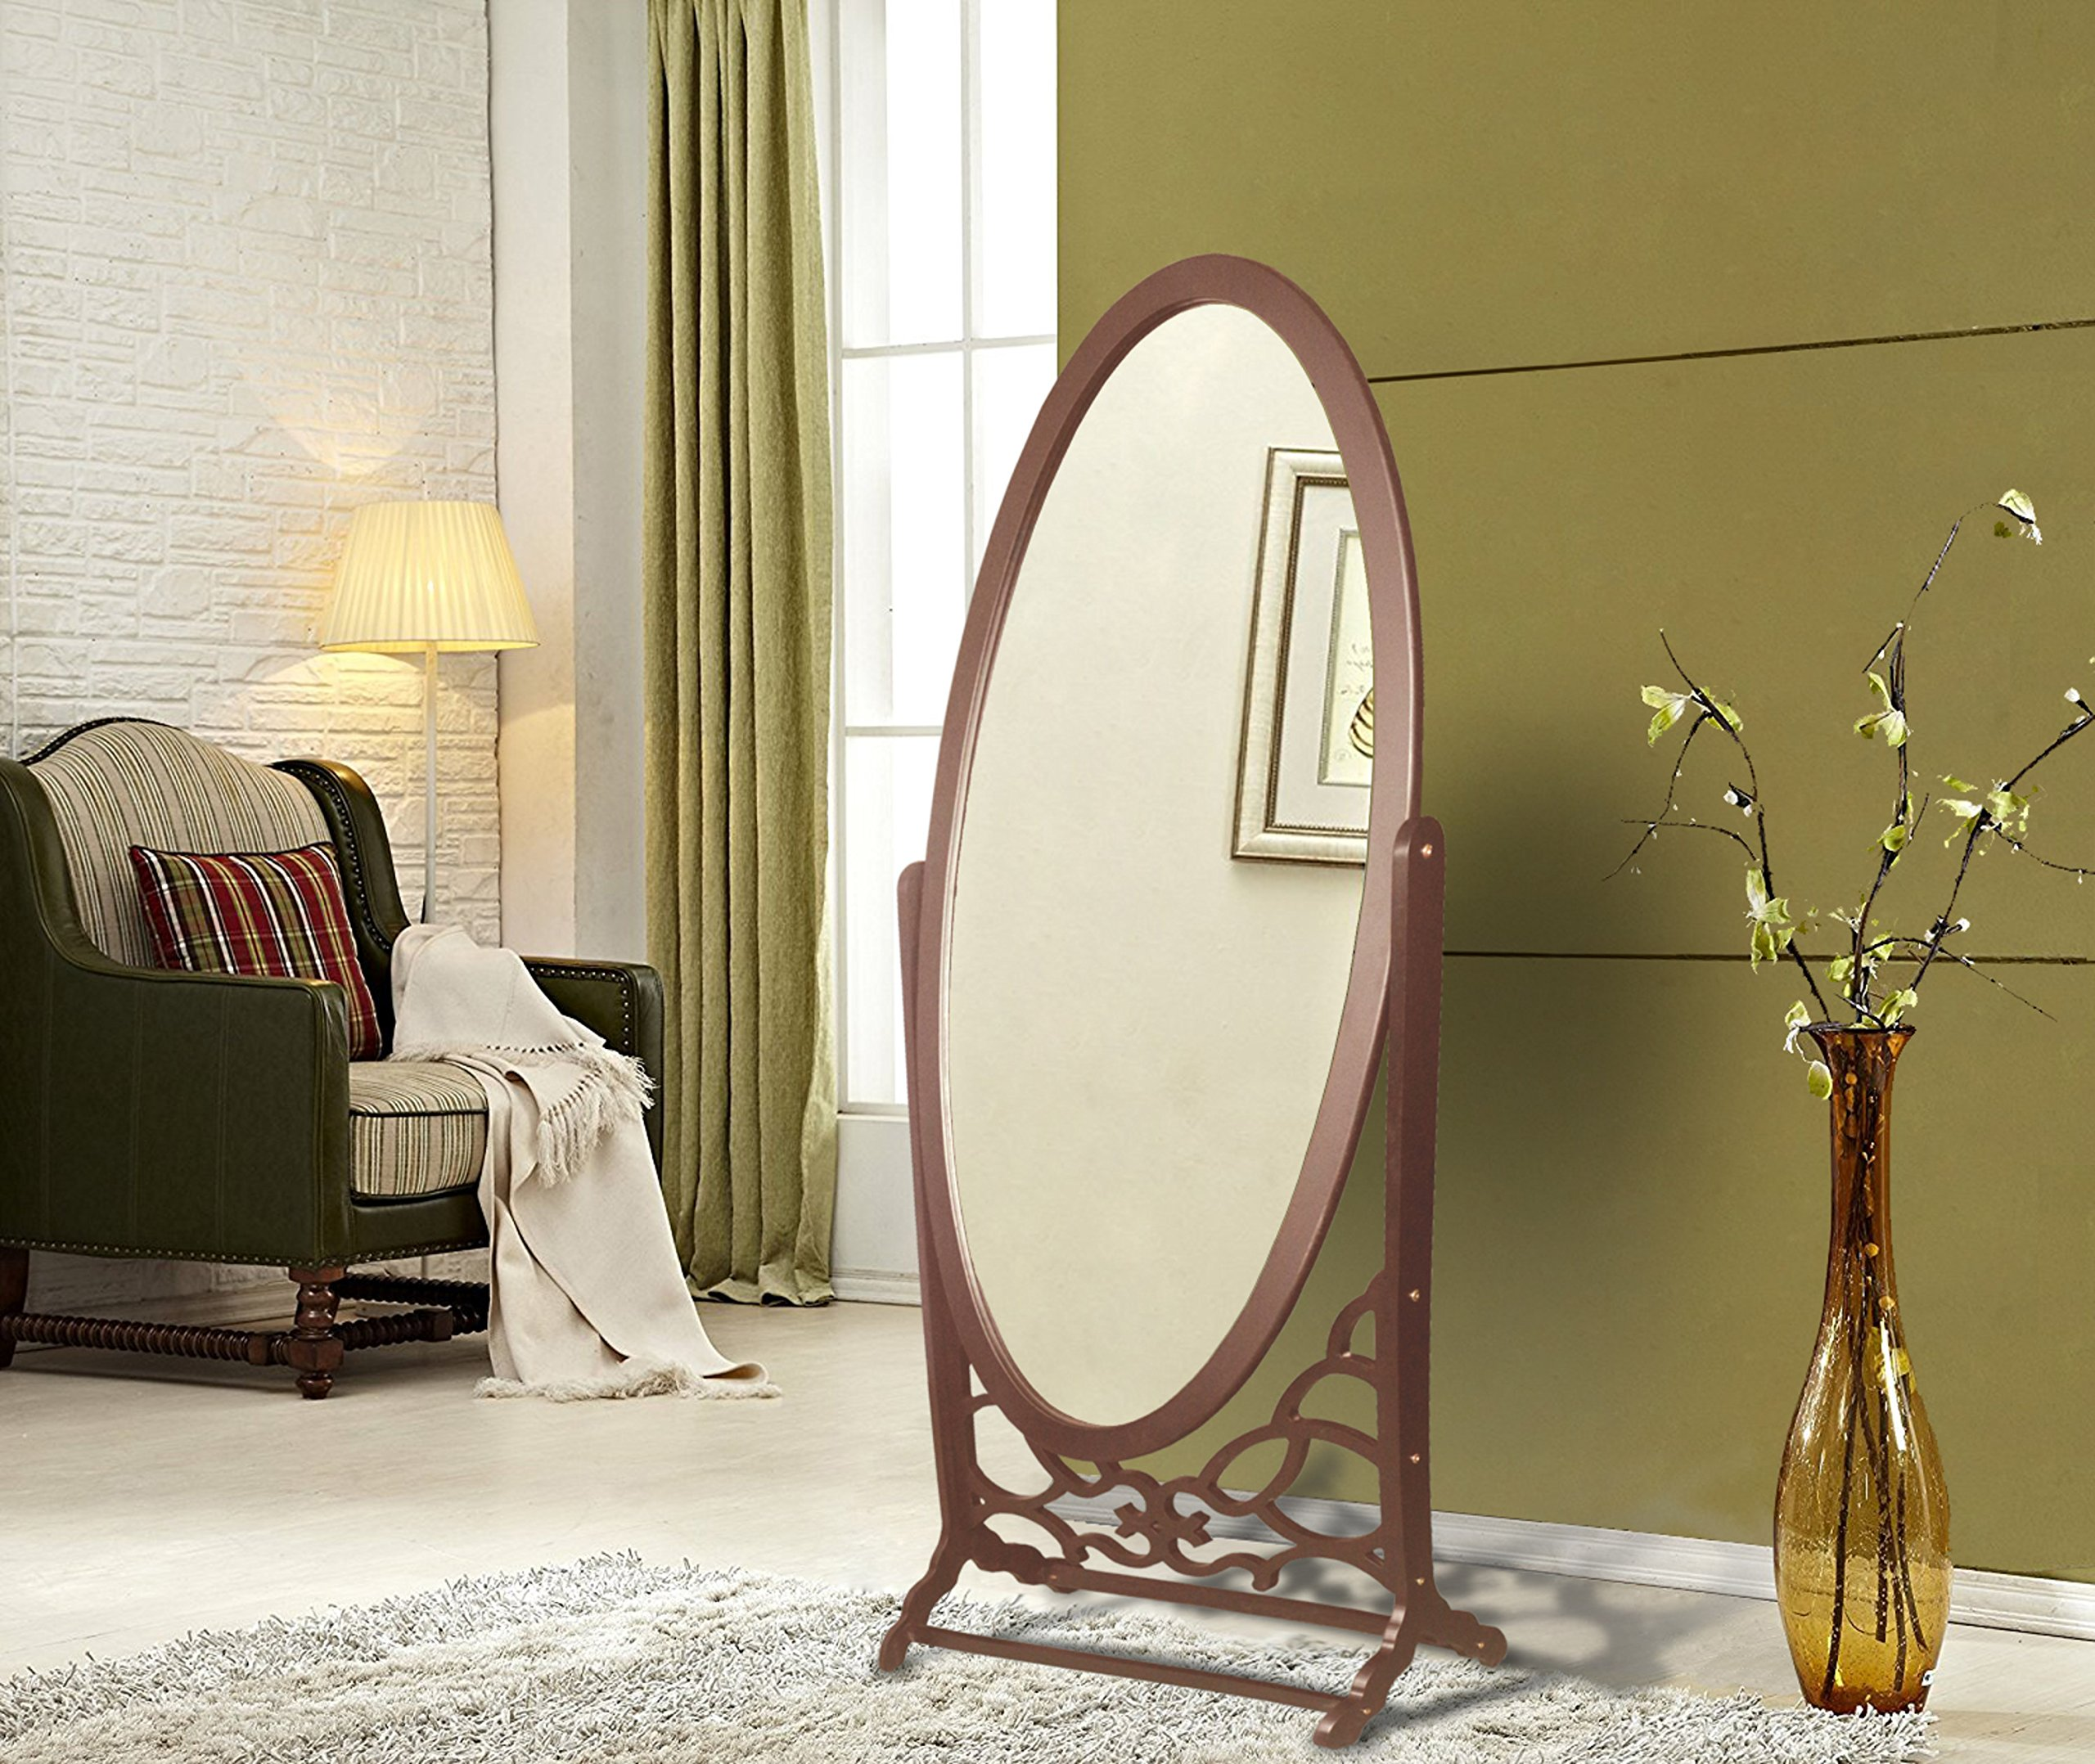 Iconic Home Bowery Mirror Modern Free standing Spindle accent legs  Floor Mirror, Espresso